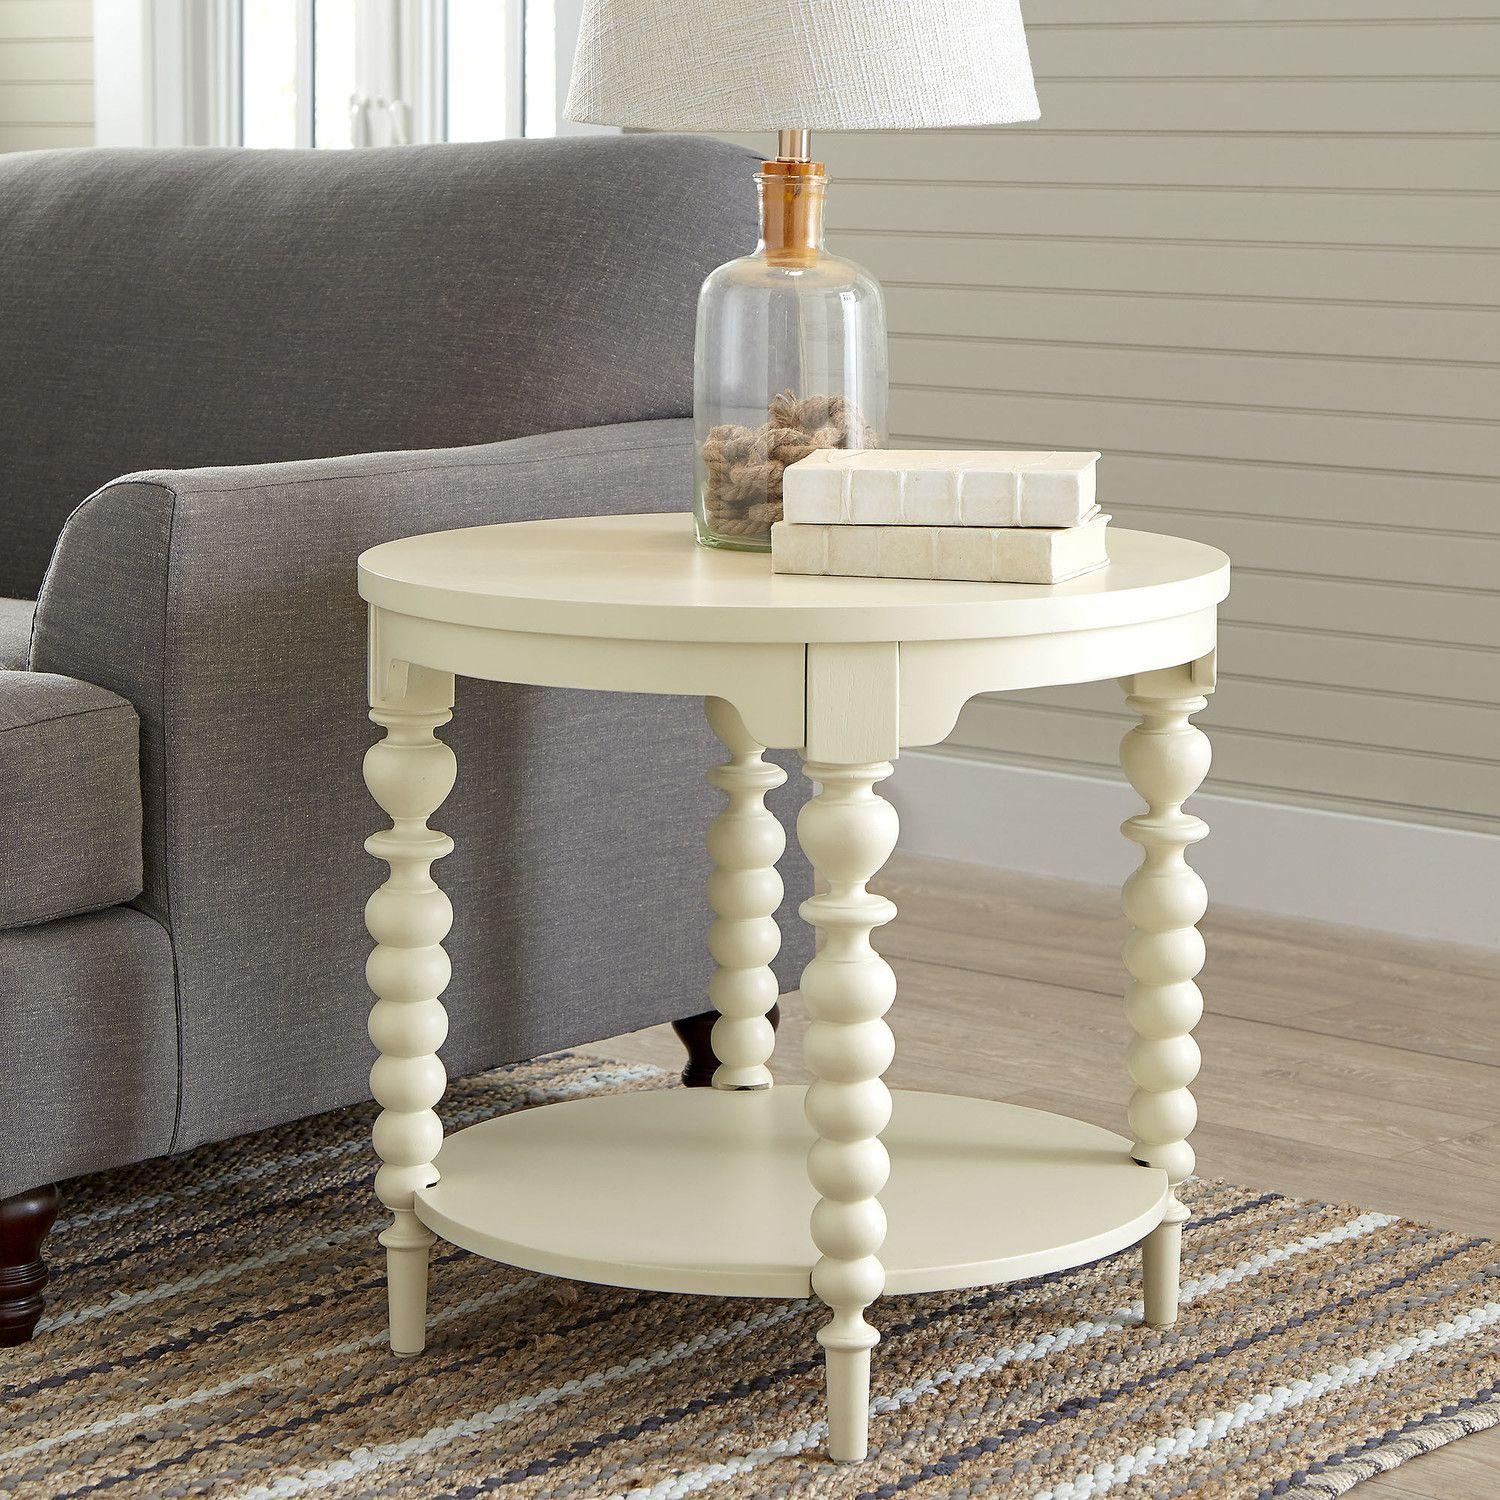 Birch Lane Parish Side Table Side Table Chair Side Table Furniture [ 1500 x 1500 Pixel ]